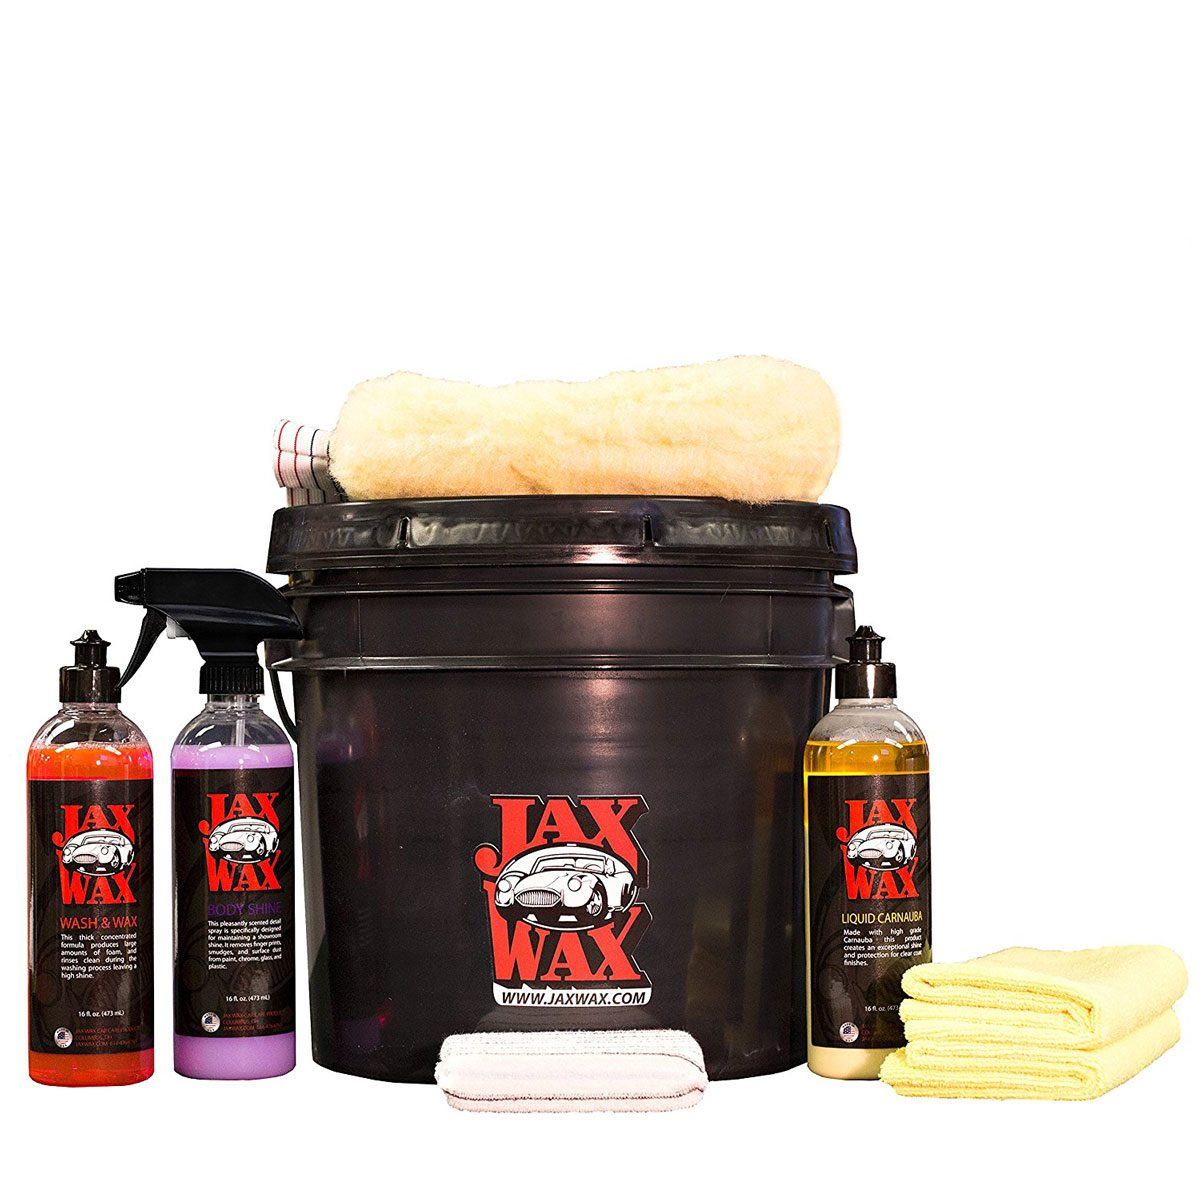 jax wax car wash kit